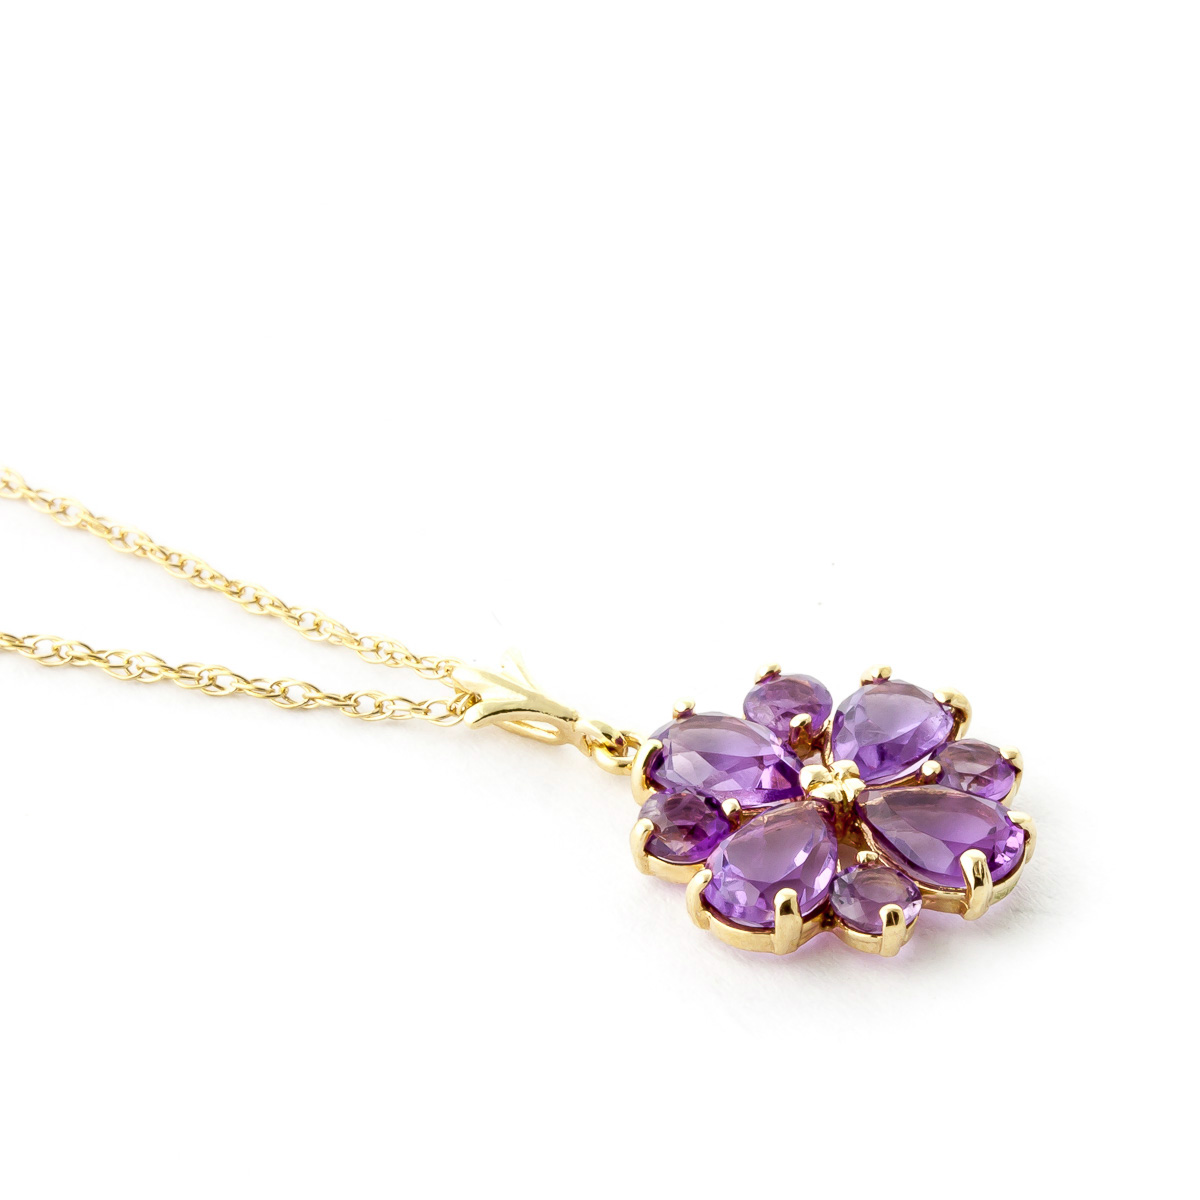 Amethyst Sunflower Pendant Necklace 2.43ctw in 9ct Gold